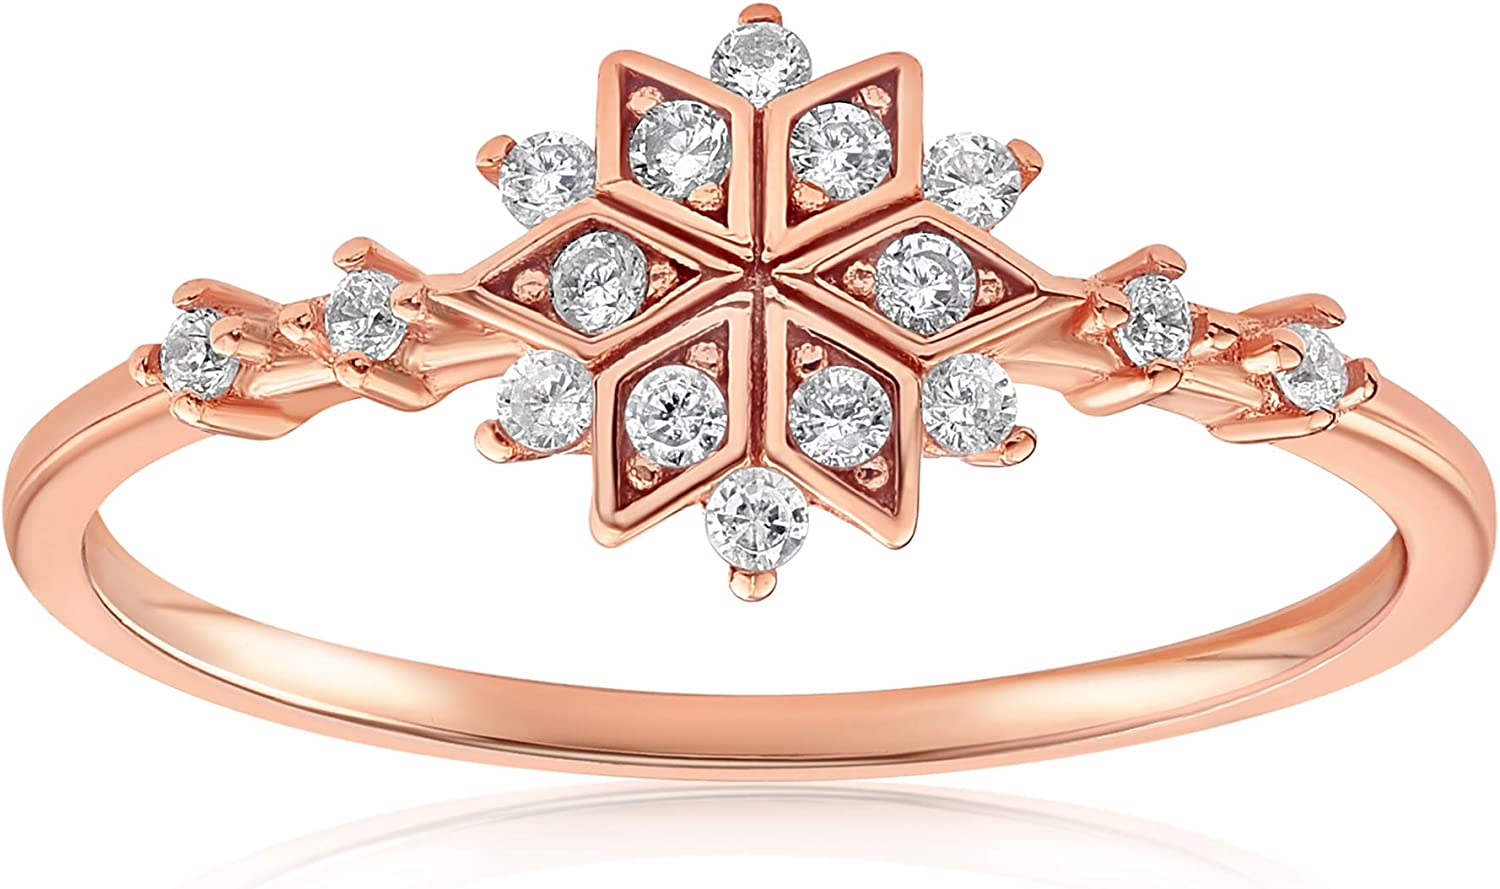 Dainty Delicate Cubic Zirconia Band for Women Blush /& Bar Sophia Snowflake Ring Girls Valentines Mothers Day Jewelry Gifts Gold Ring Stackable Ring Dainty Ring Cluster Ring Teens